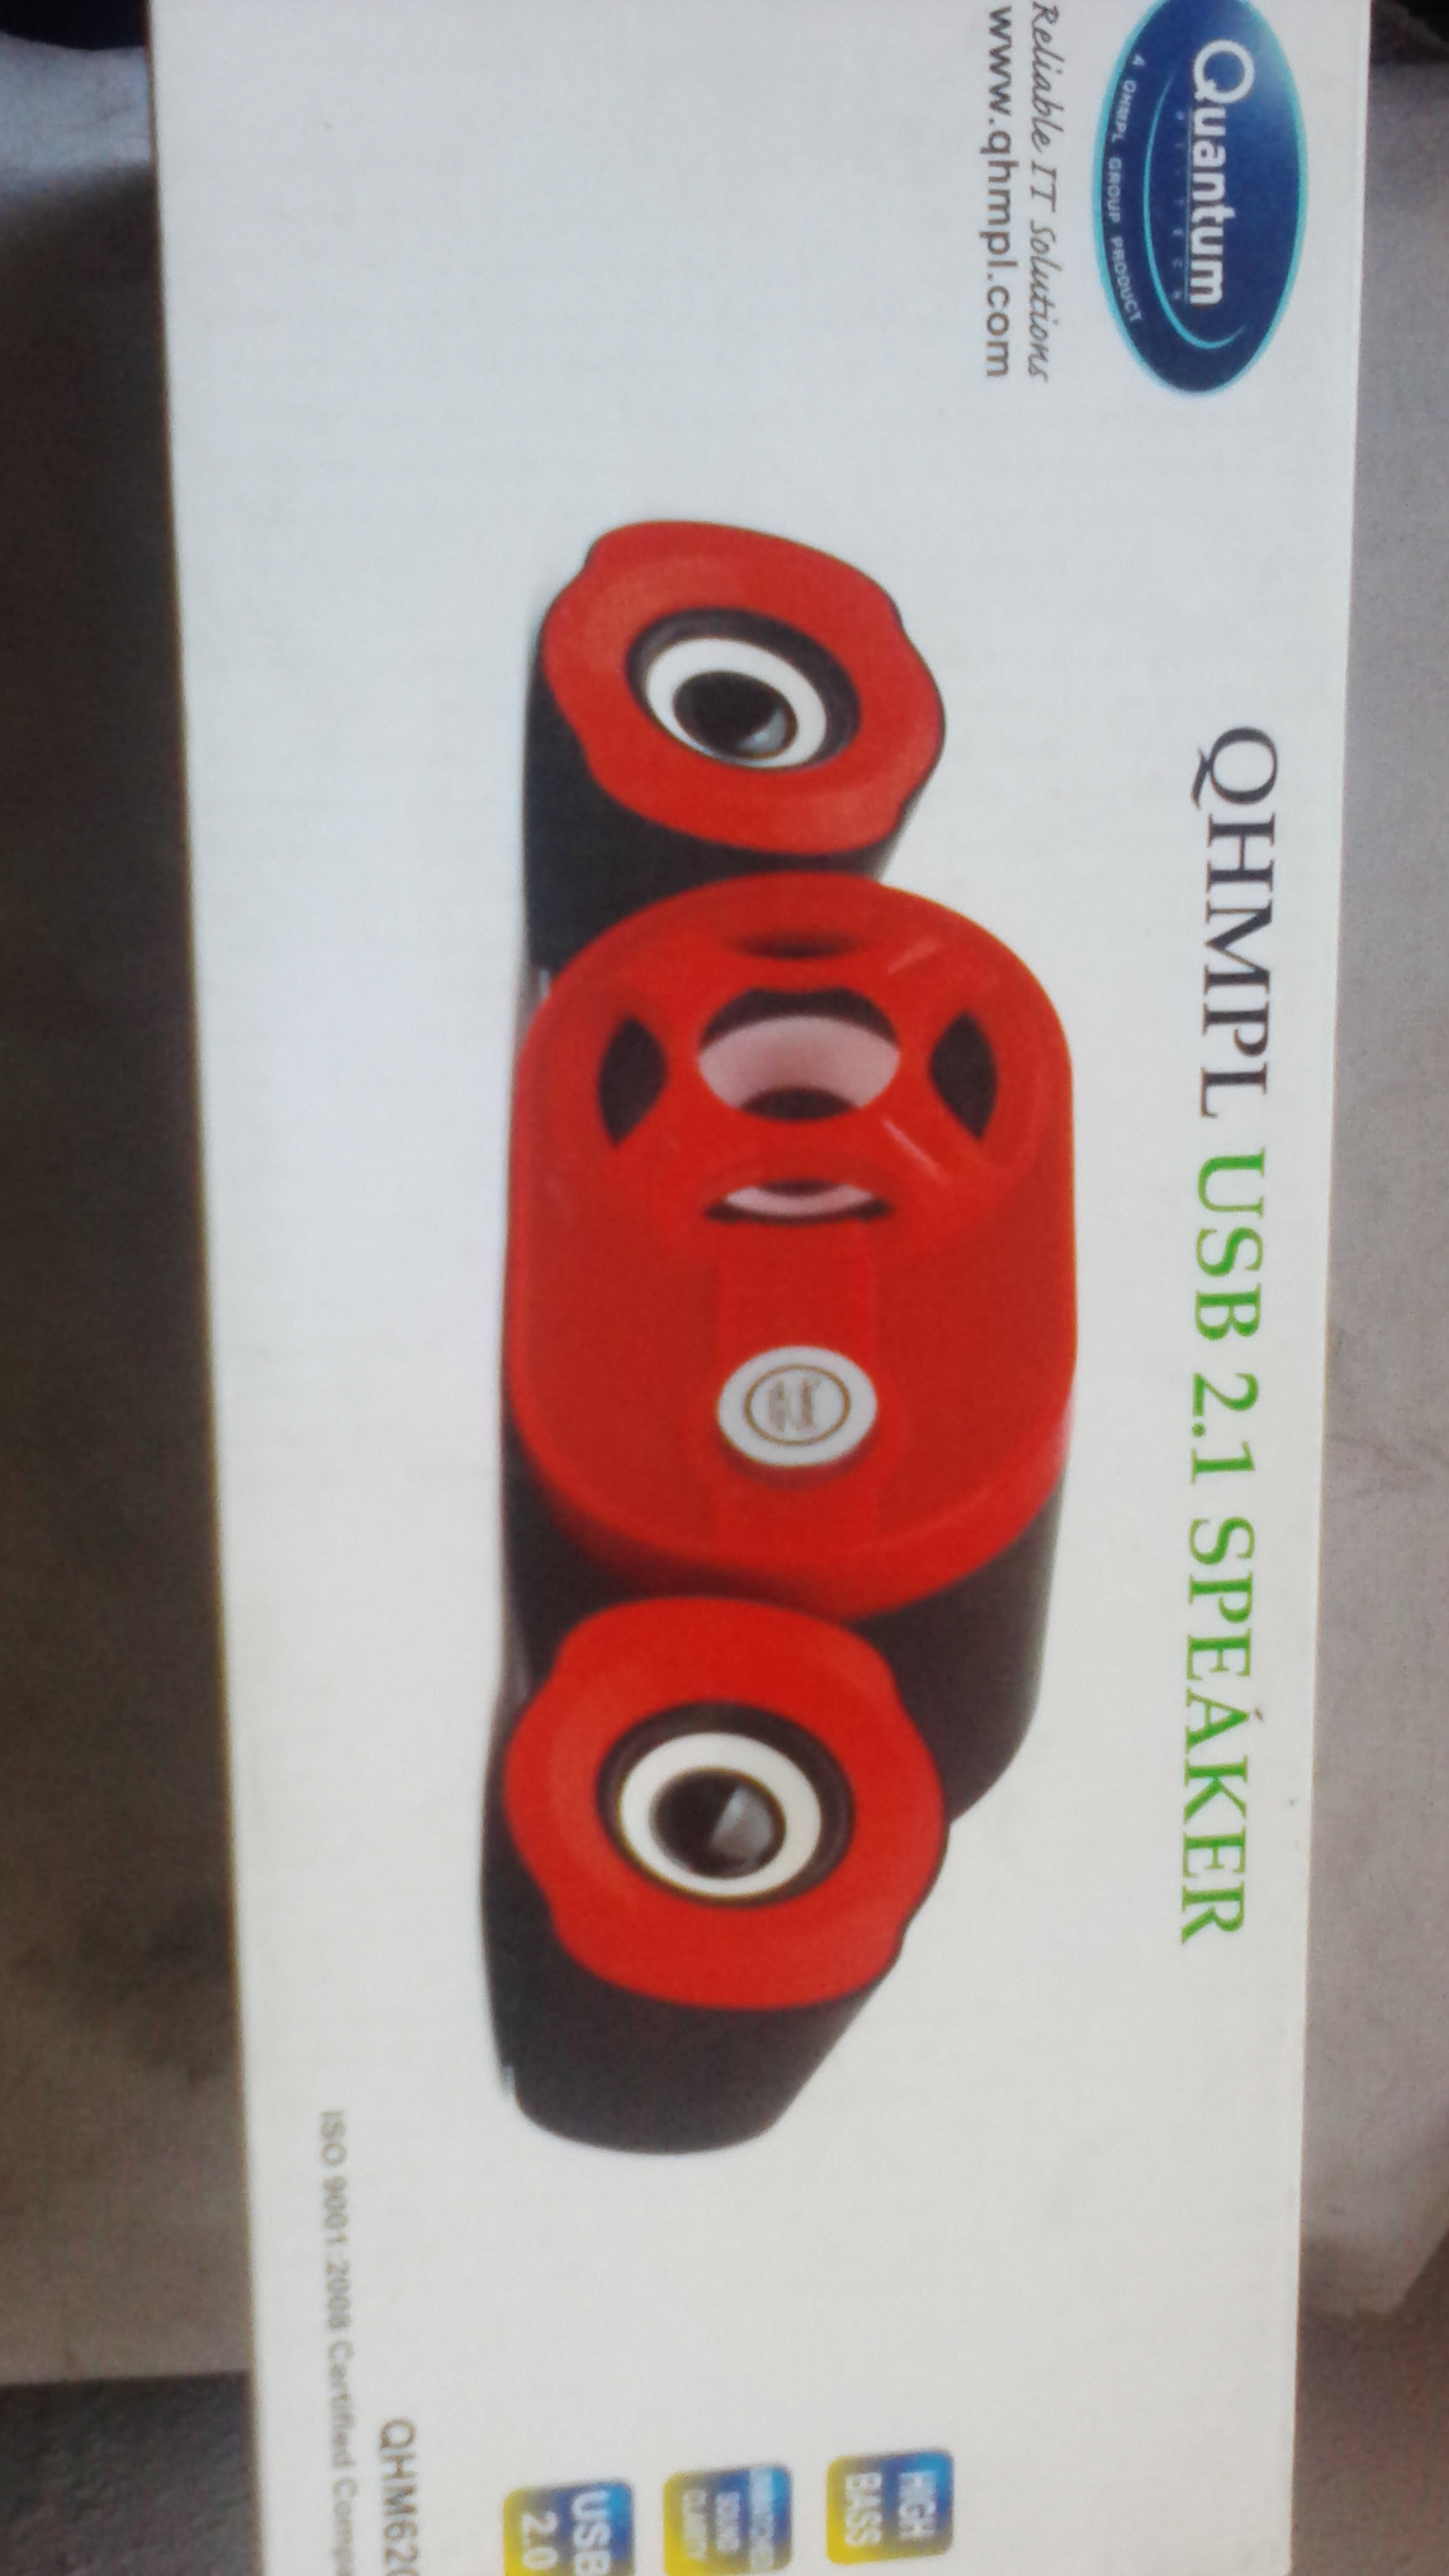 Quantum QHMPL USB 2.1 speaker model QHM6200 red color